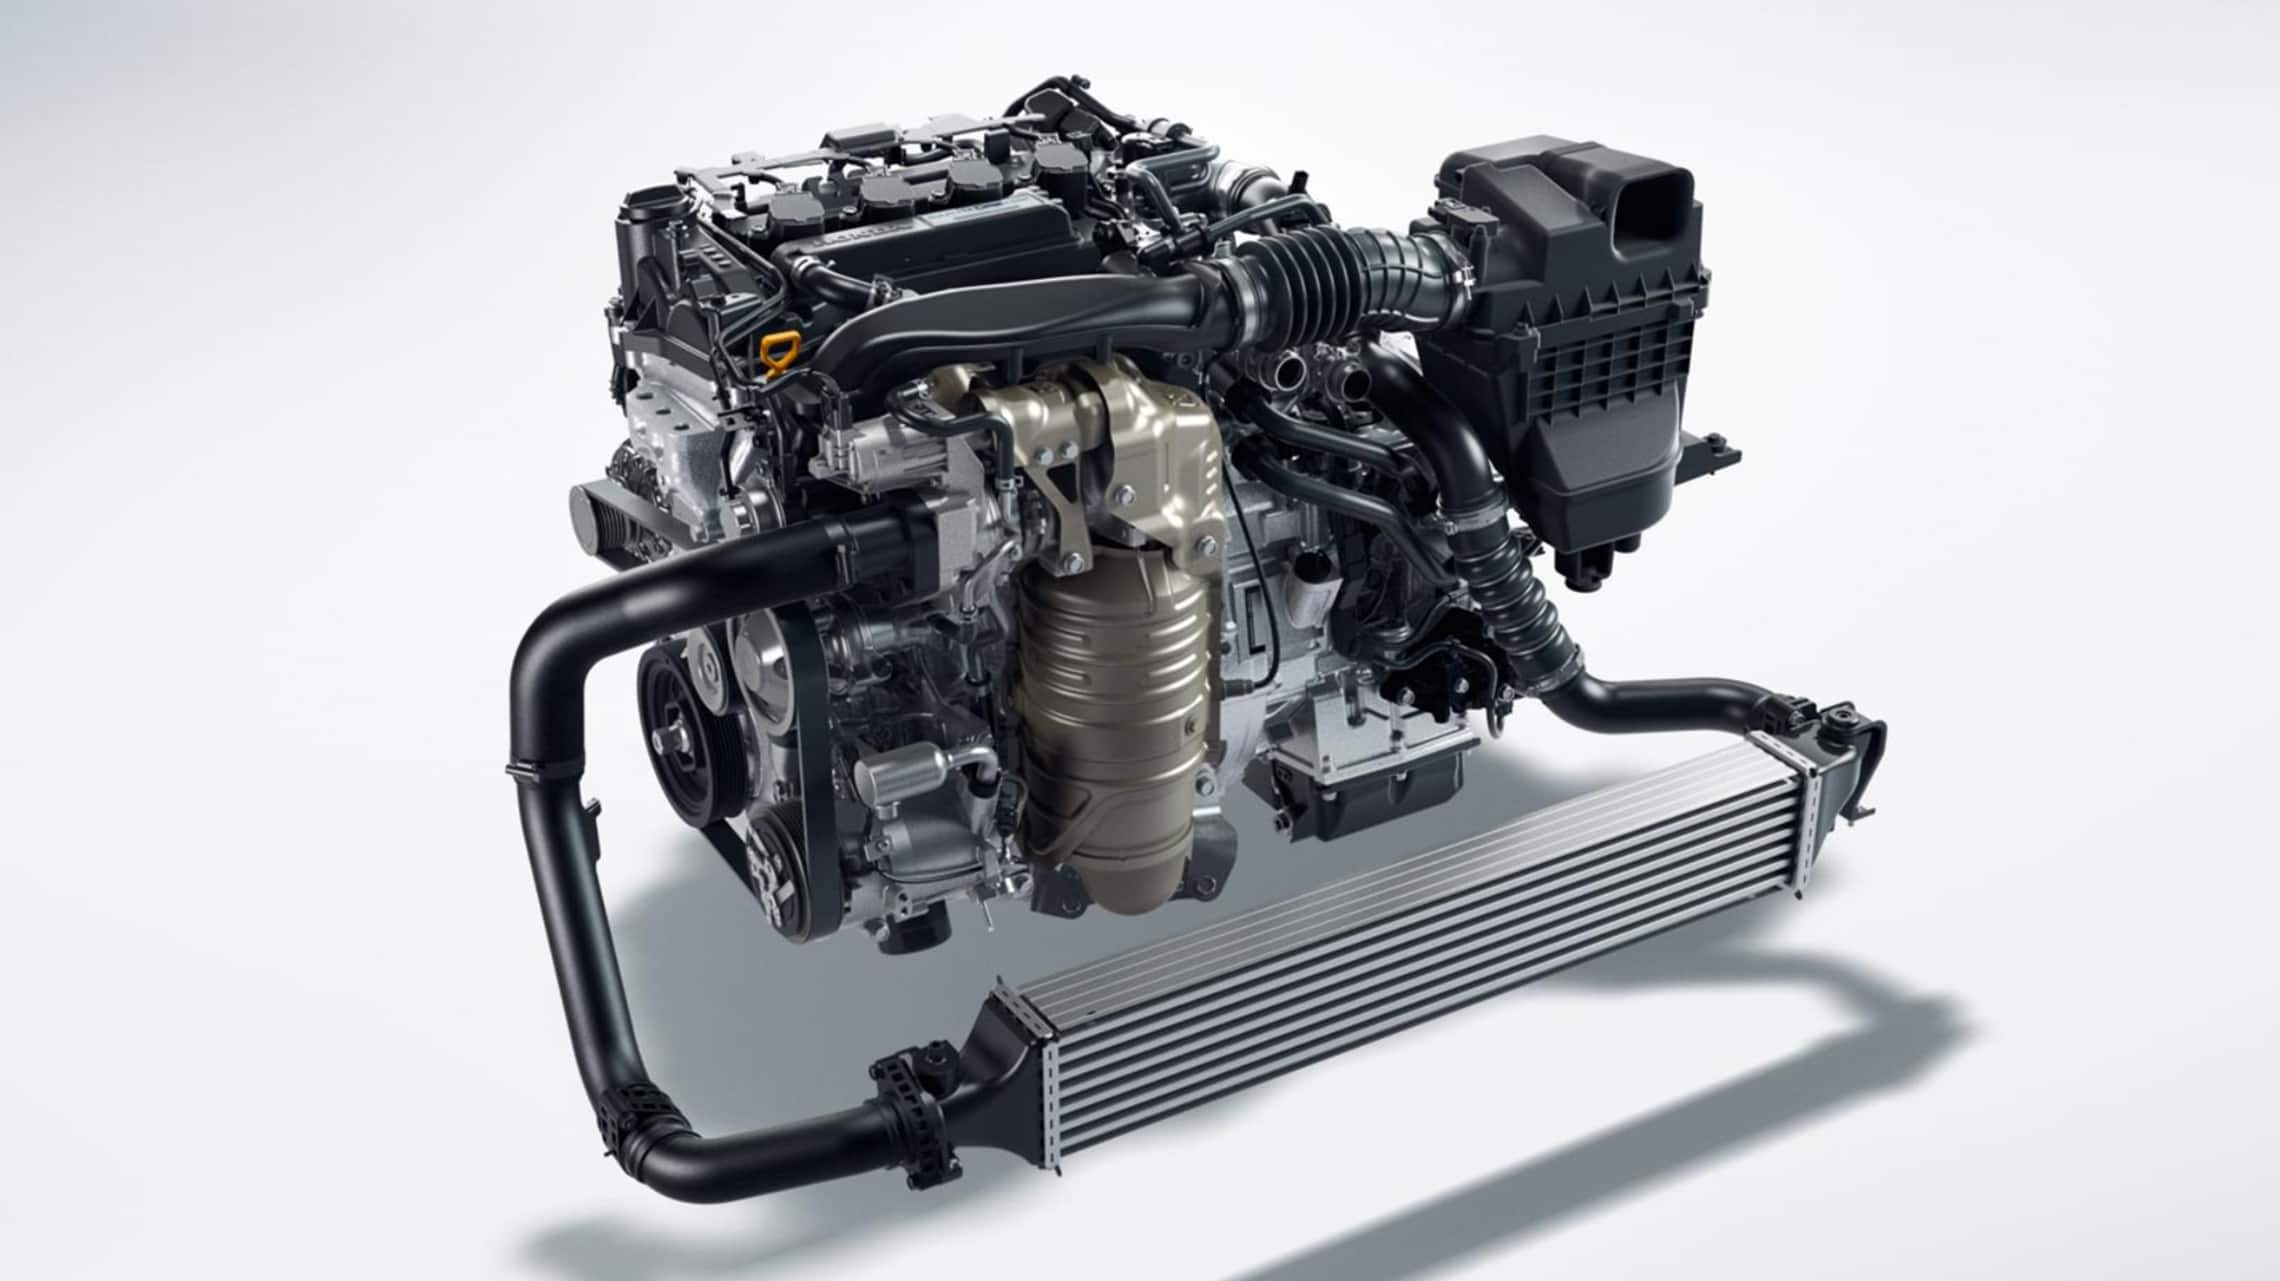 1.5-liter turbocharged engine detail in the 2021 Honda Civic Hatchback.